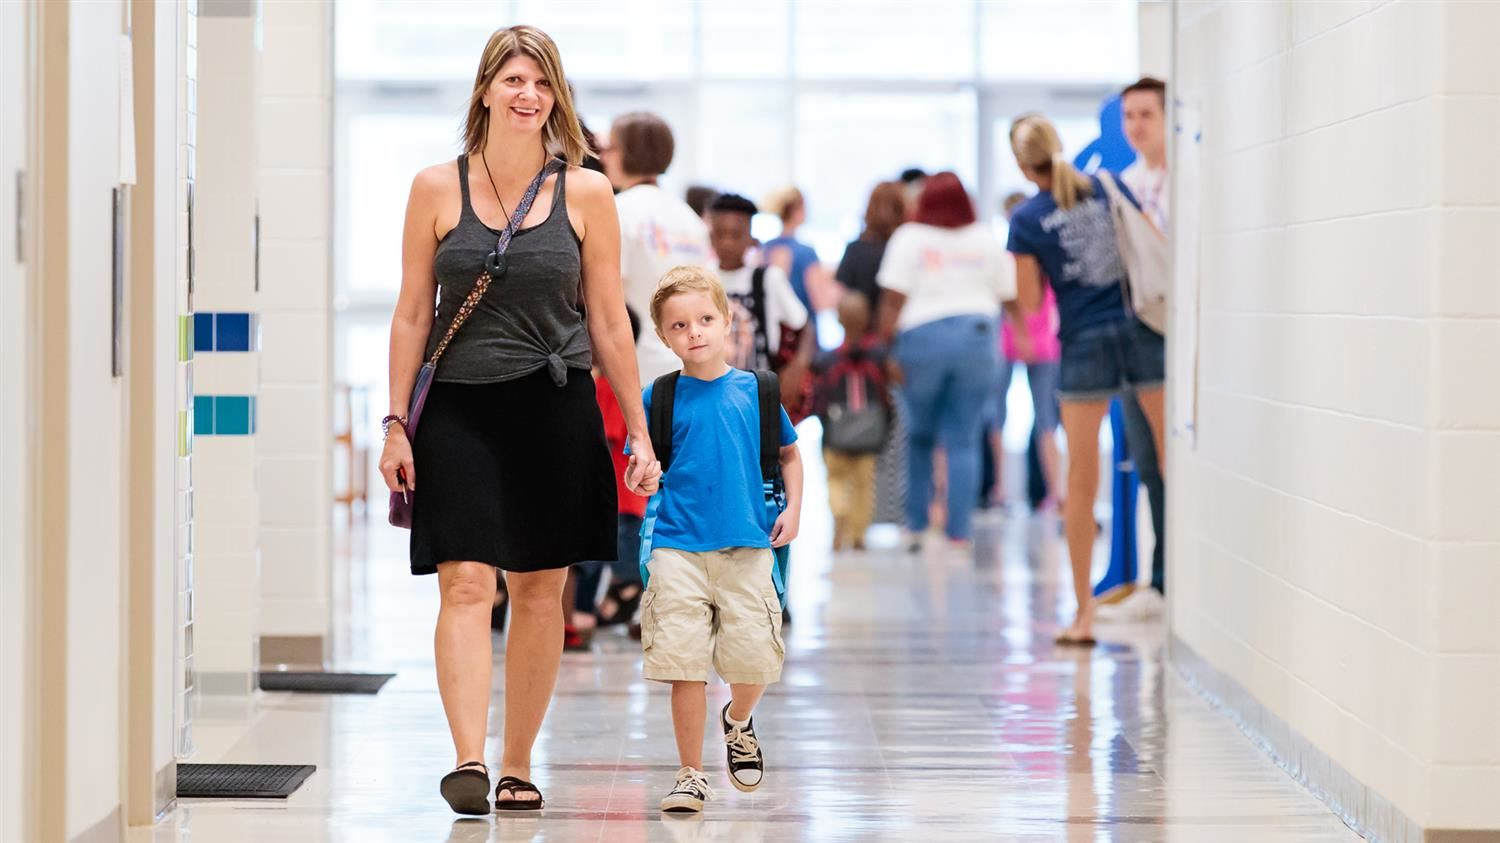 A prospective WCPSS parent is walking with her son during a school visit.